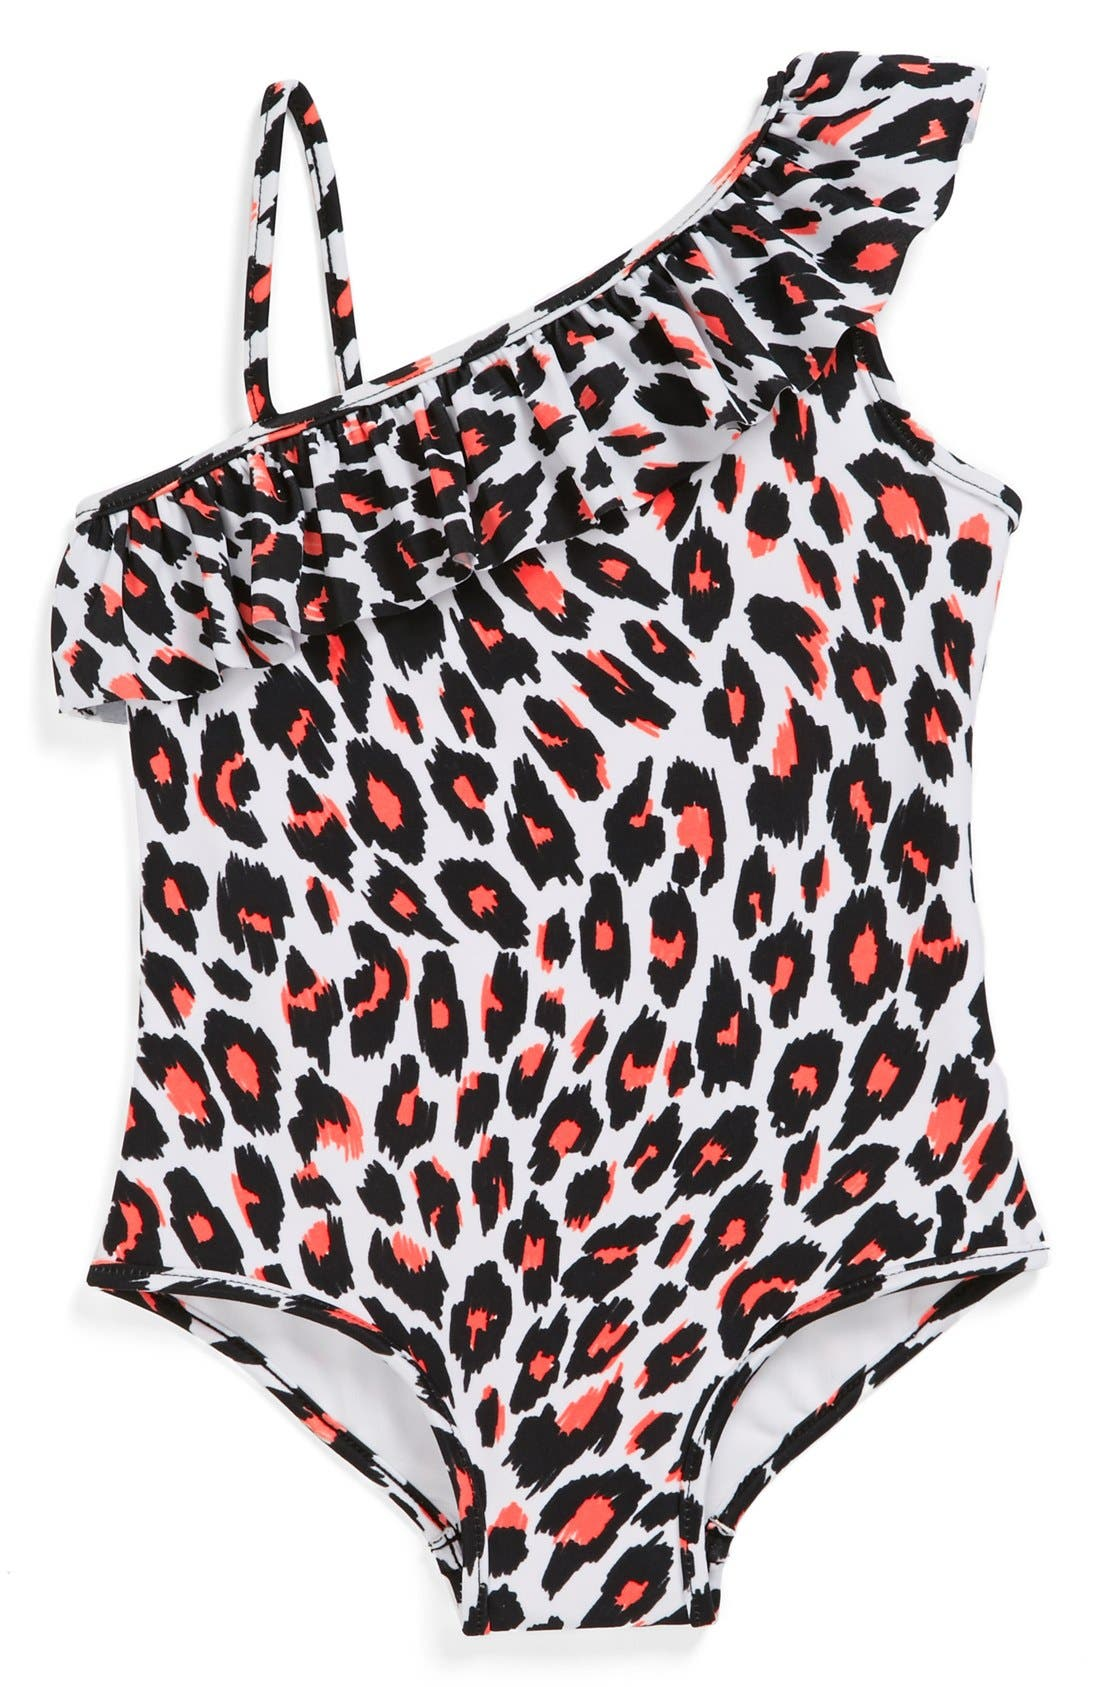 Alternate Image 1 Selected - Milly Minis Shoulder Ruffle One-Piece Swimsuit (Toddler Girls, Little Girls & Big Girls)